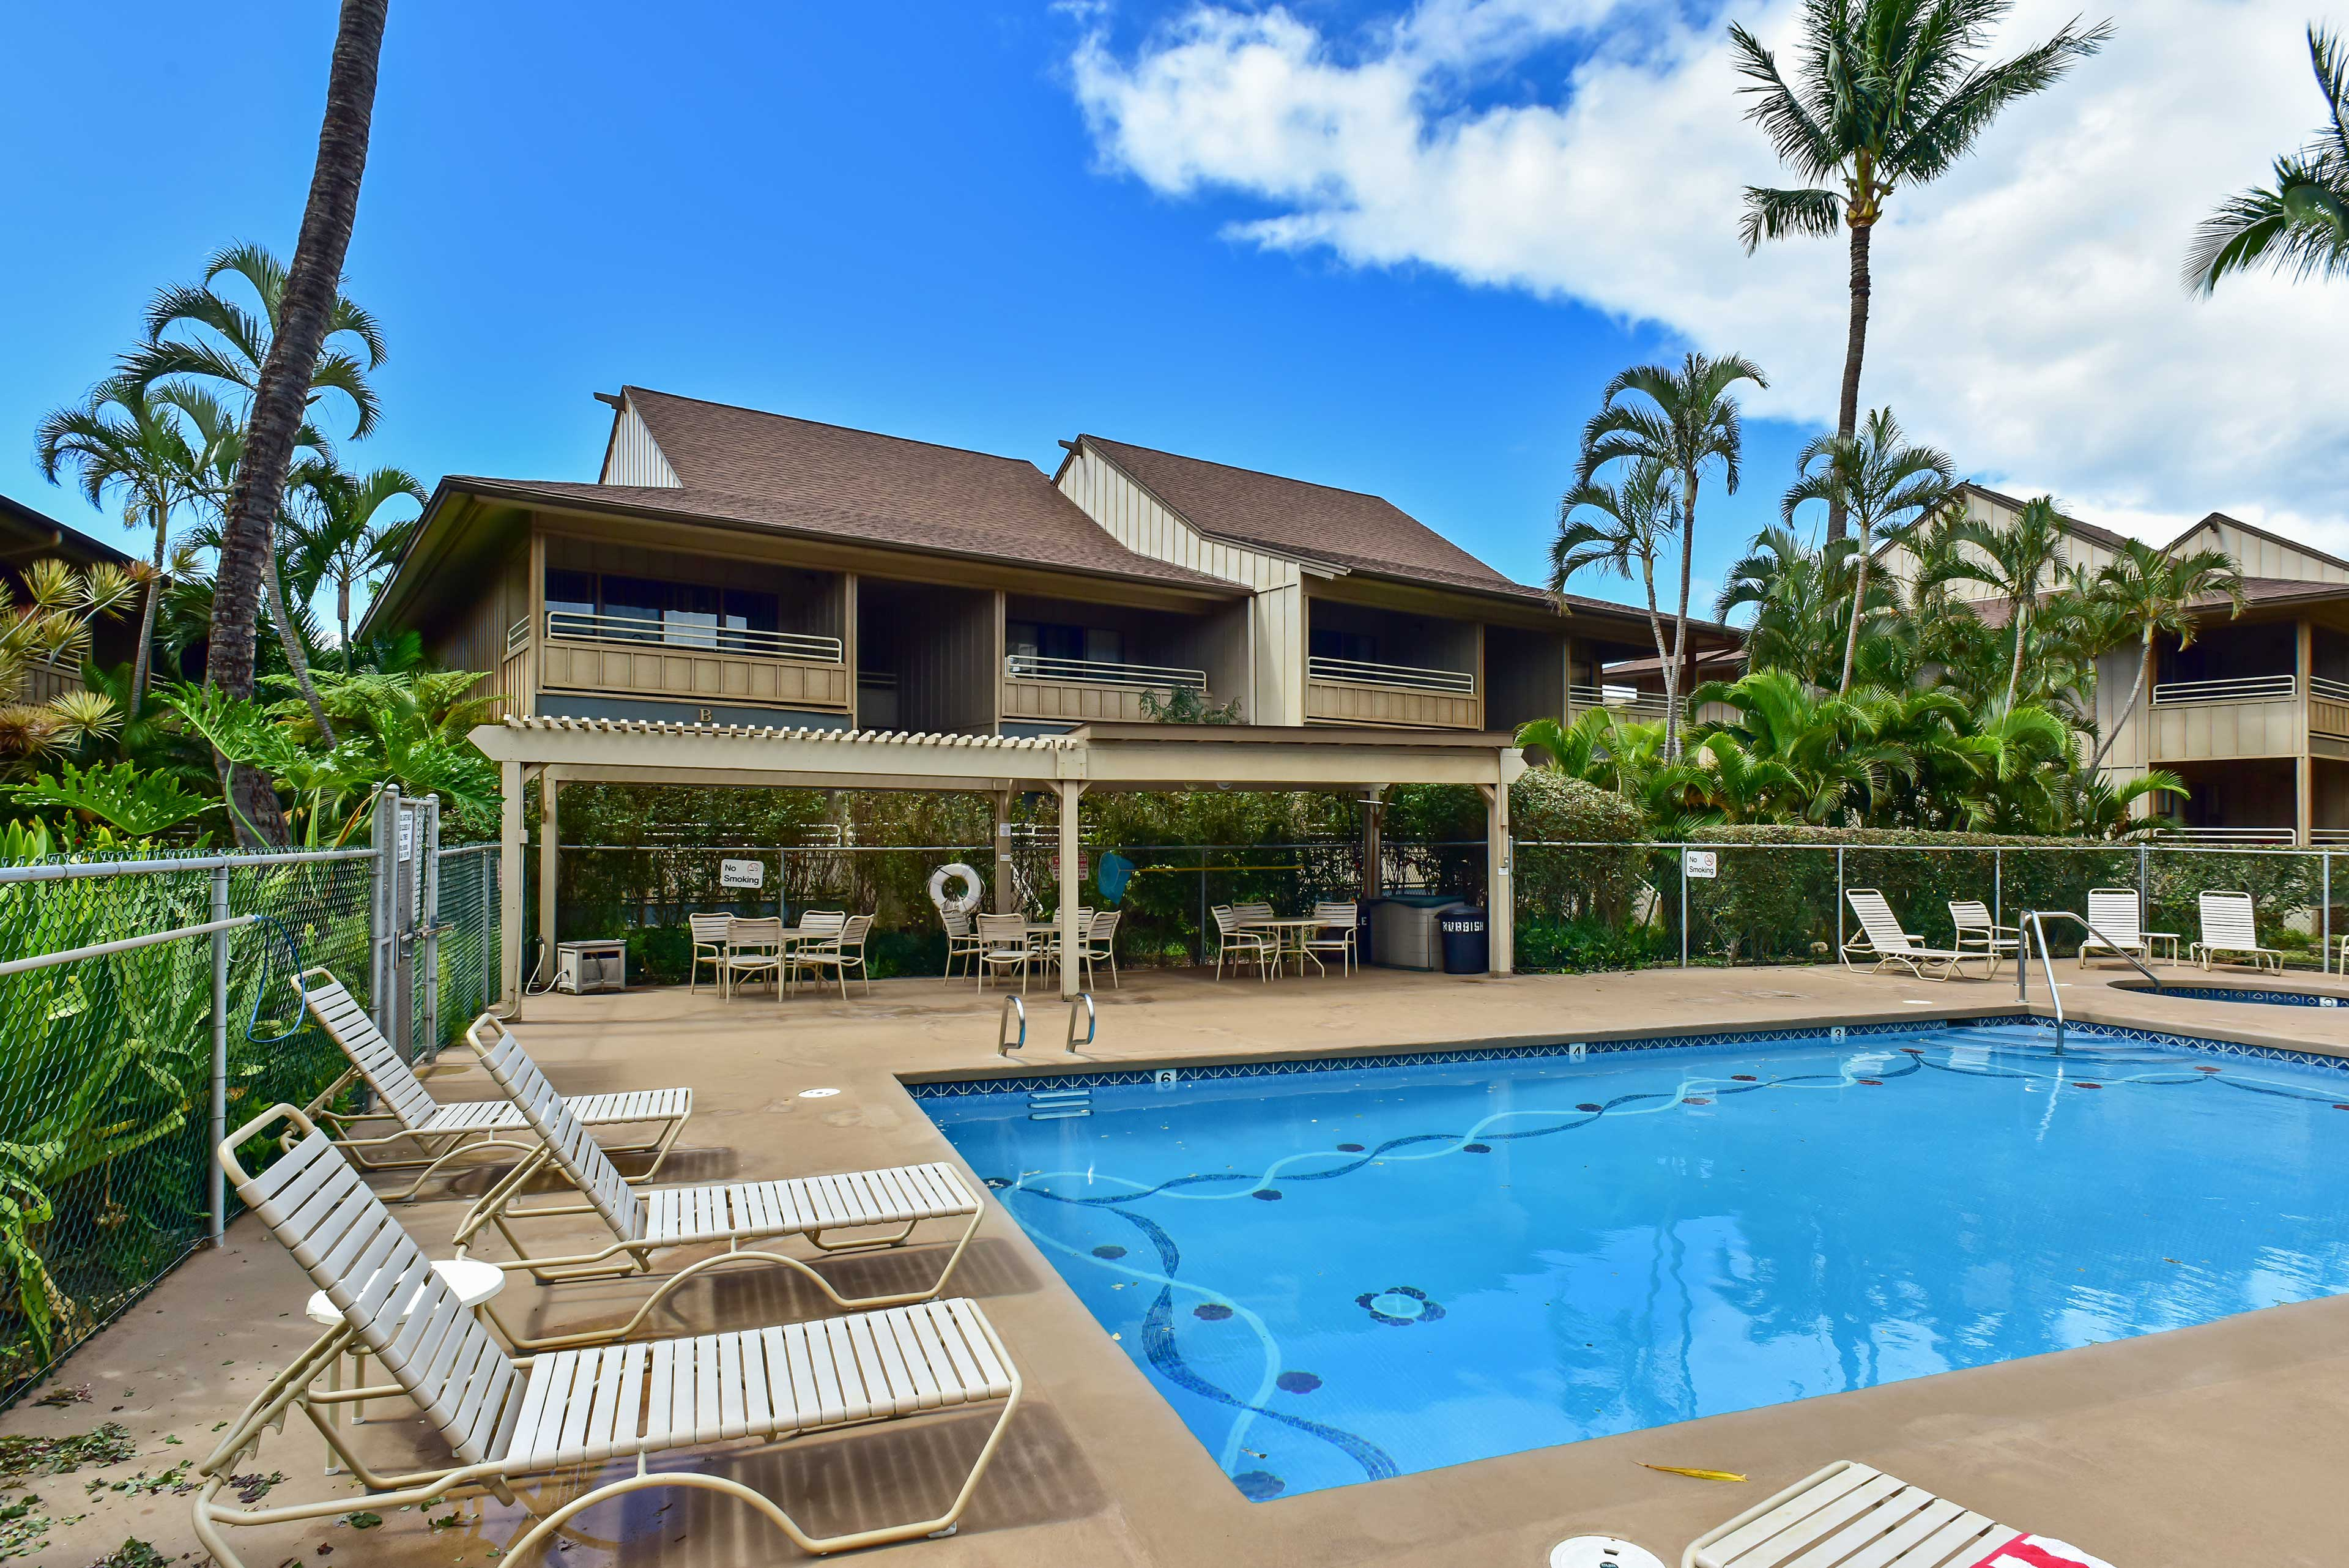 Take a dip in the community pool to cool off at this condo in Kihei!